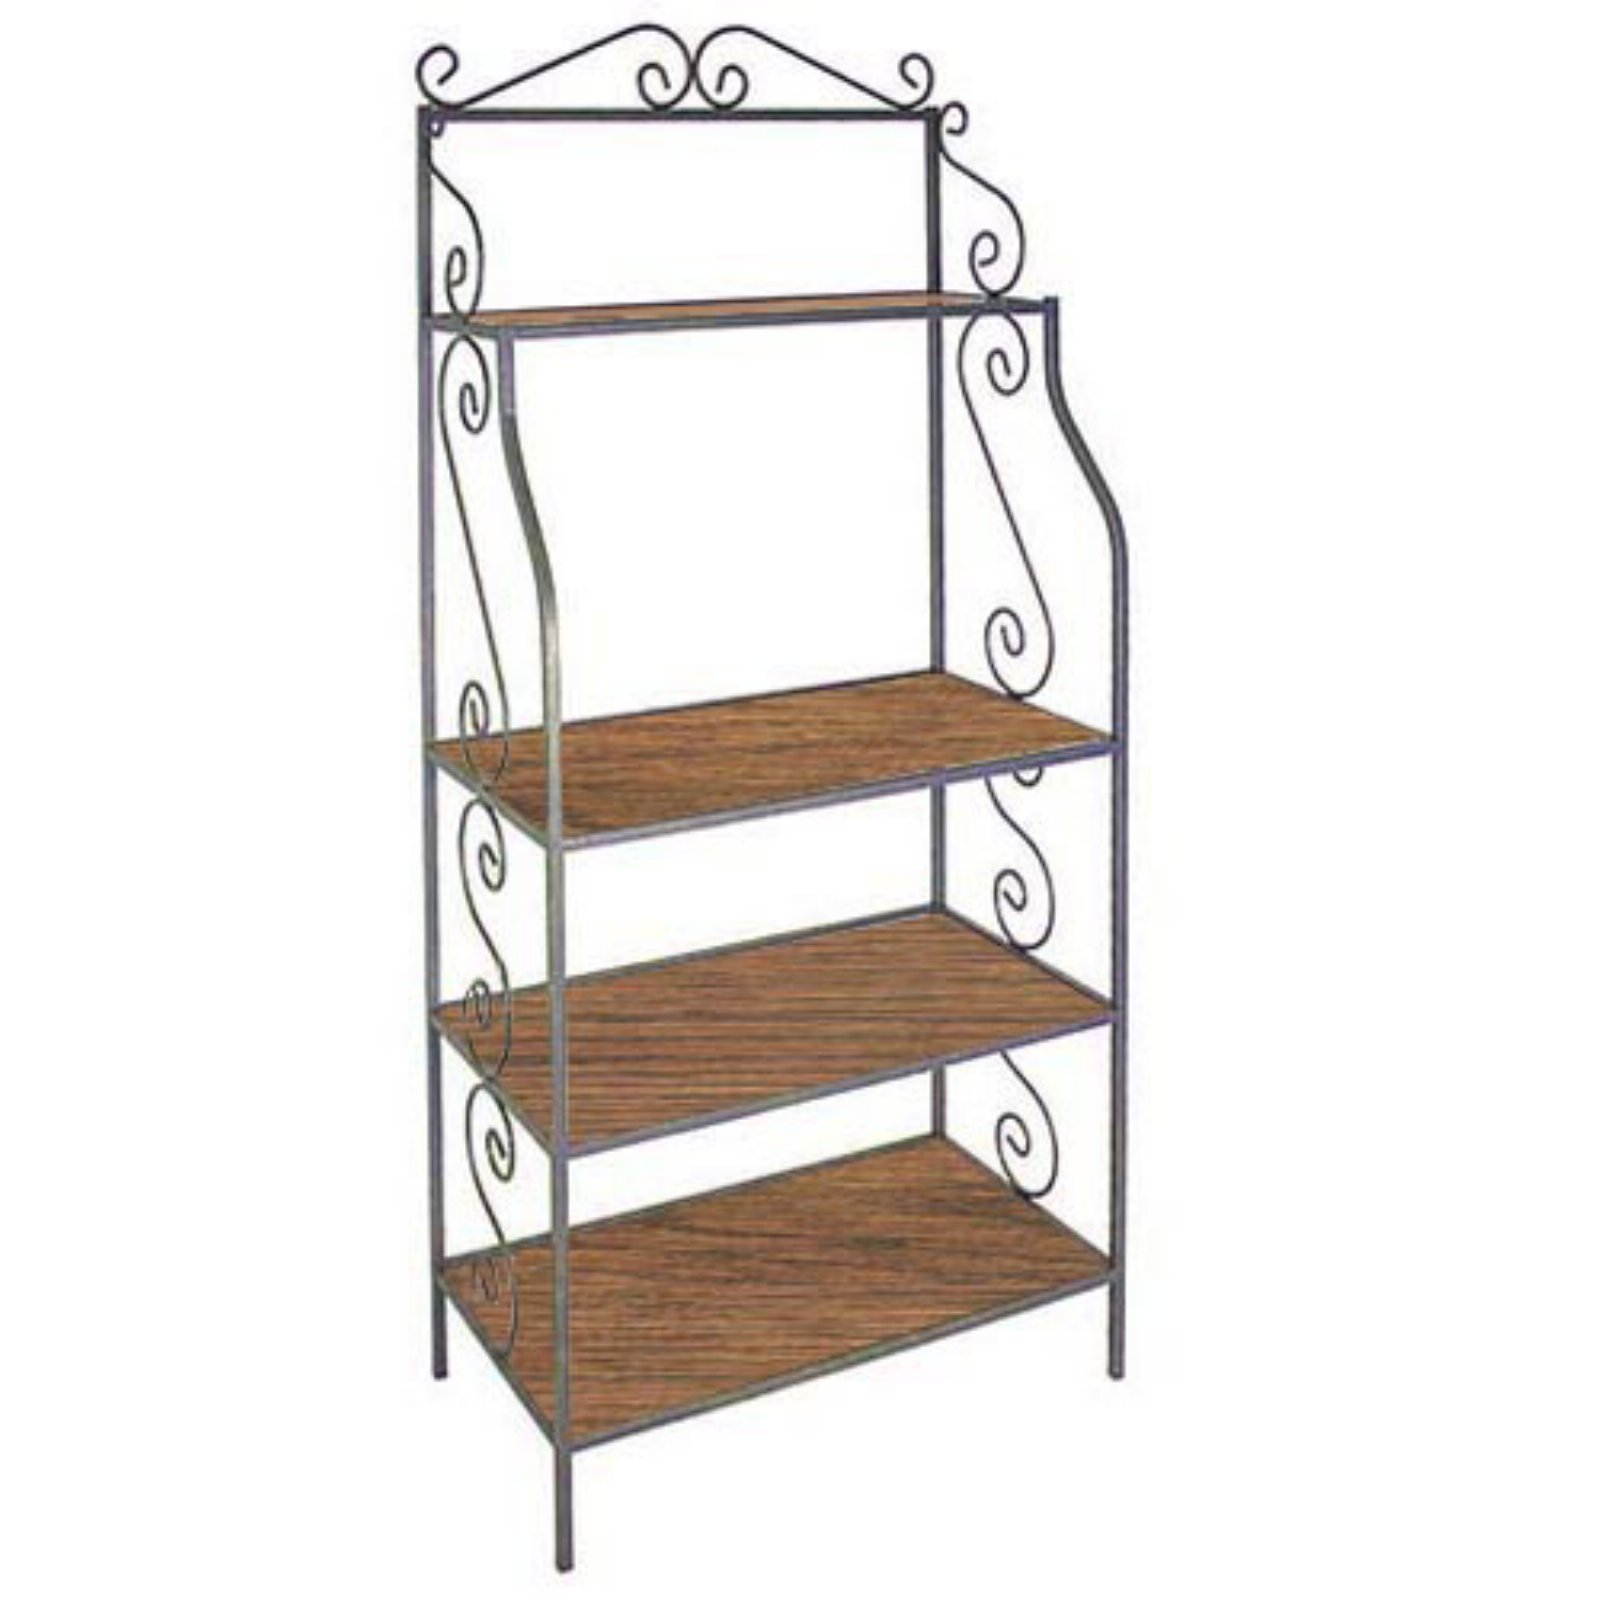 Austine Bakers Rack with Wood Shelves